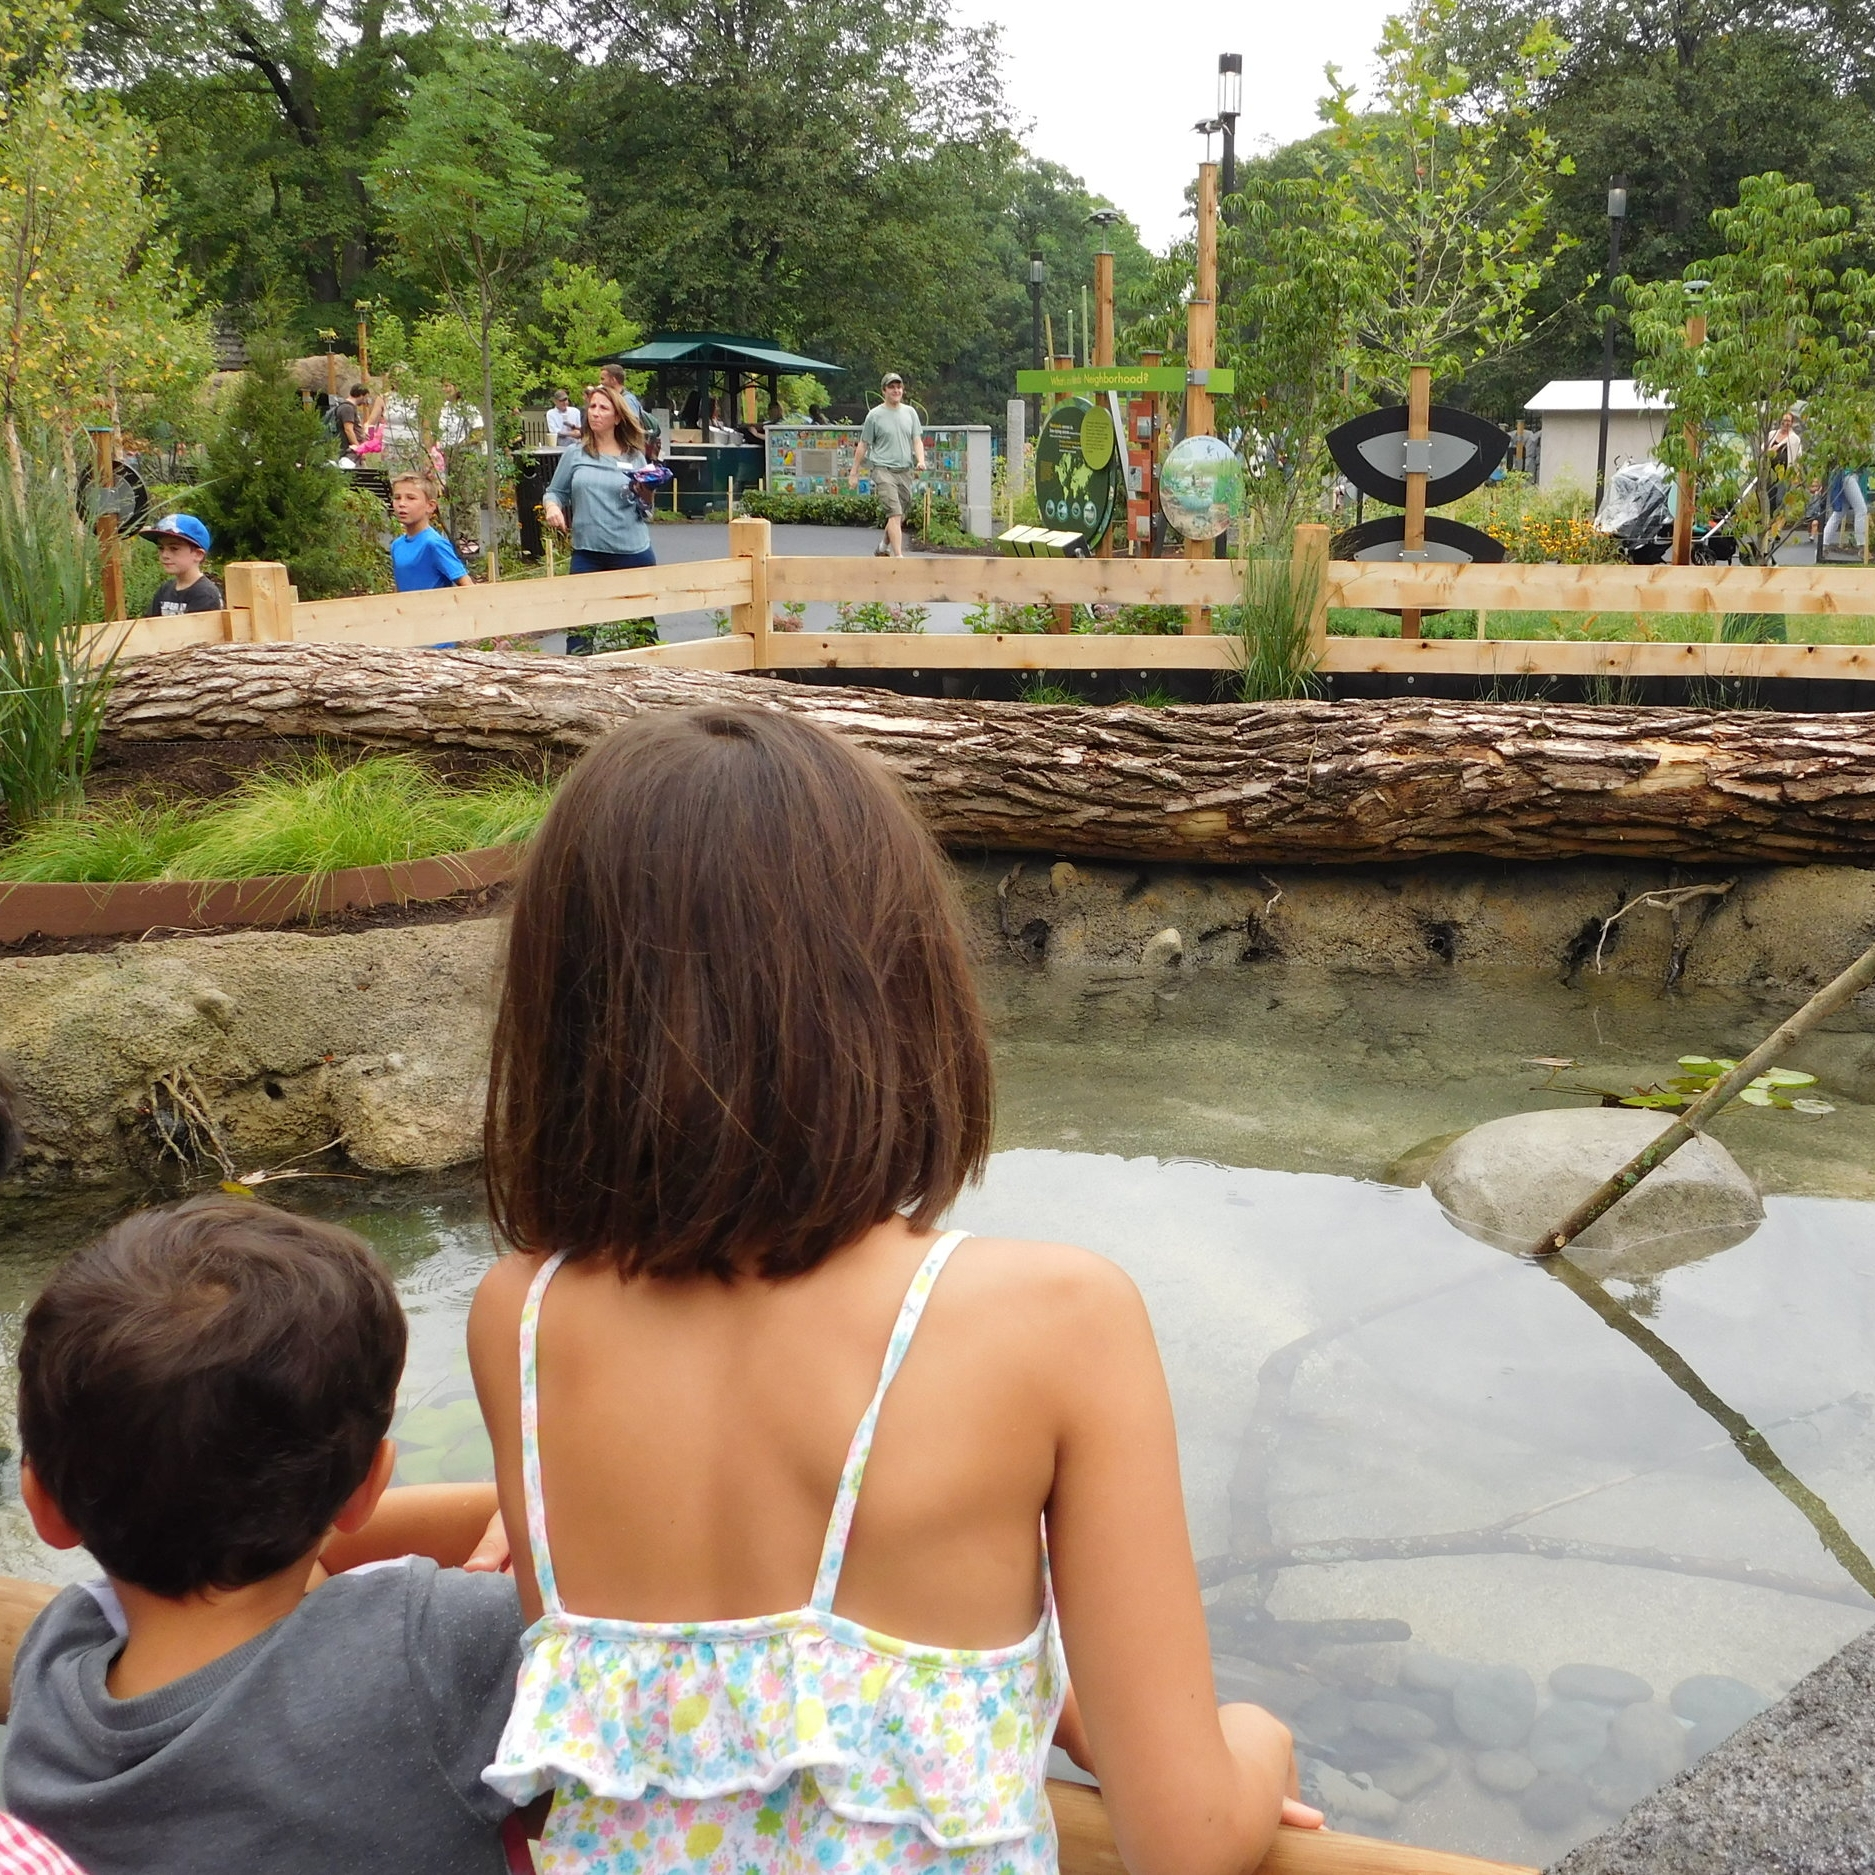 A new approach to a children's zoo: habitats for animals alongside experiential play for children